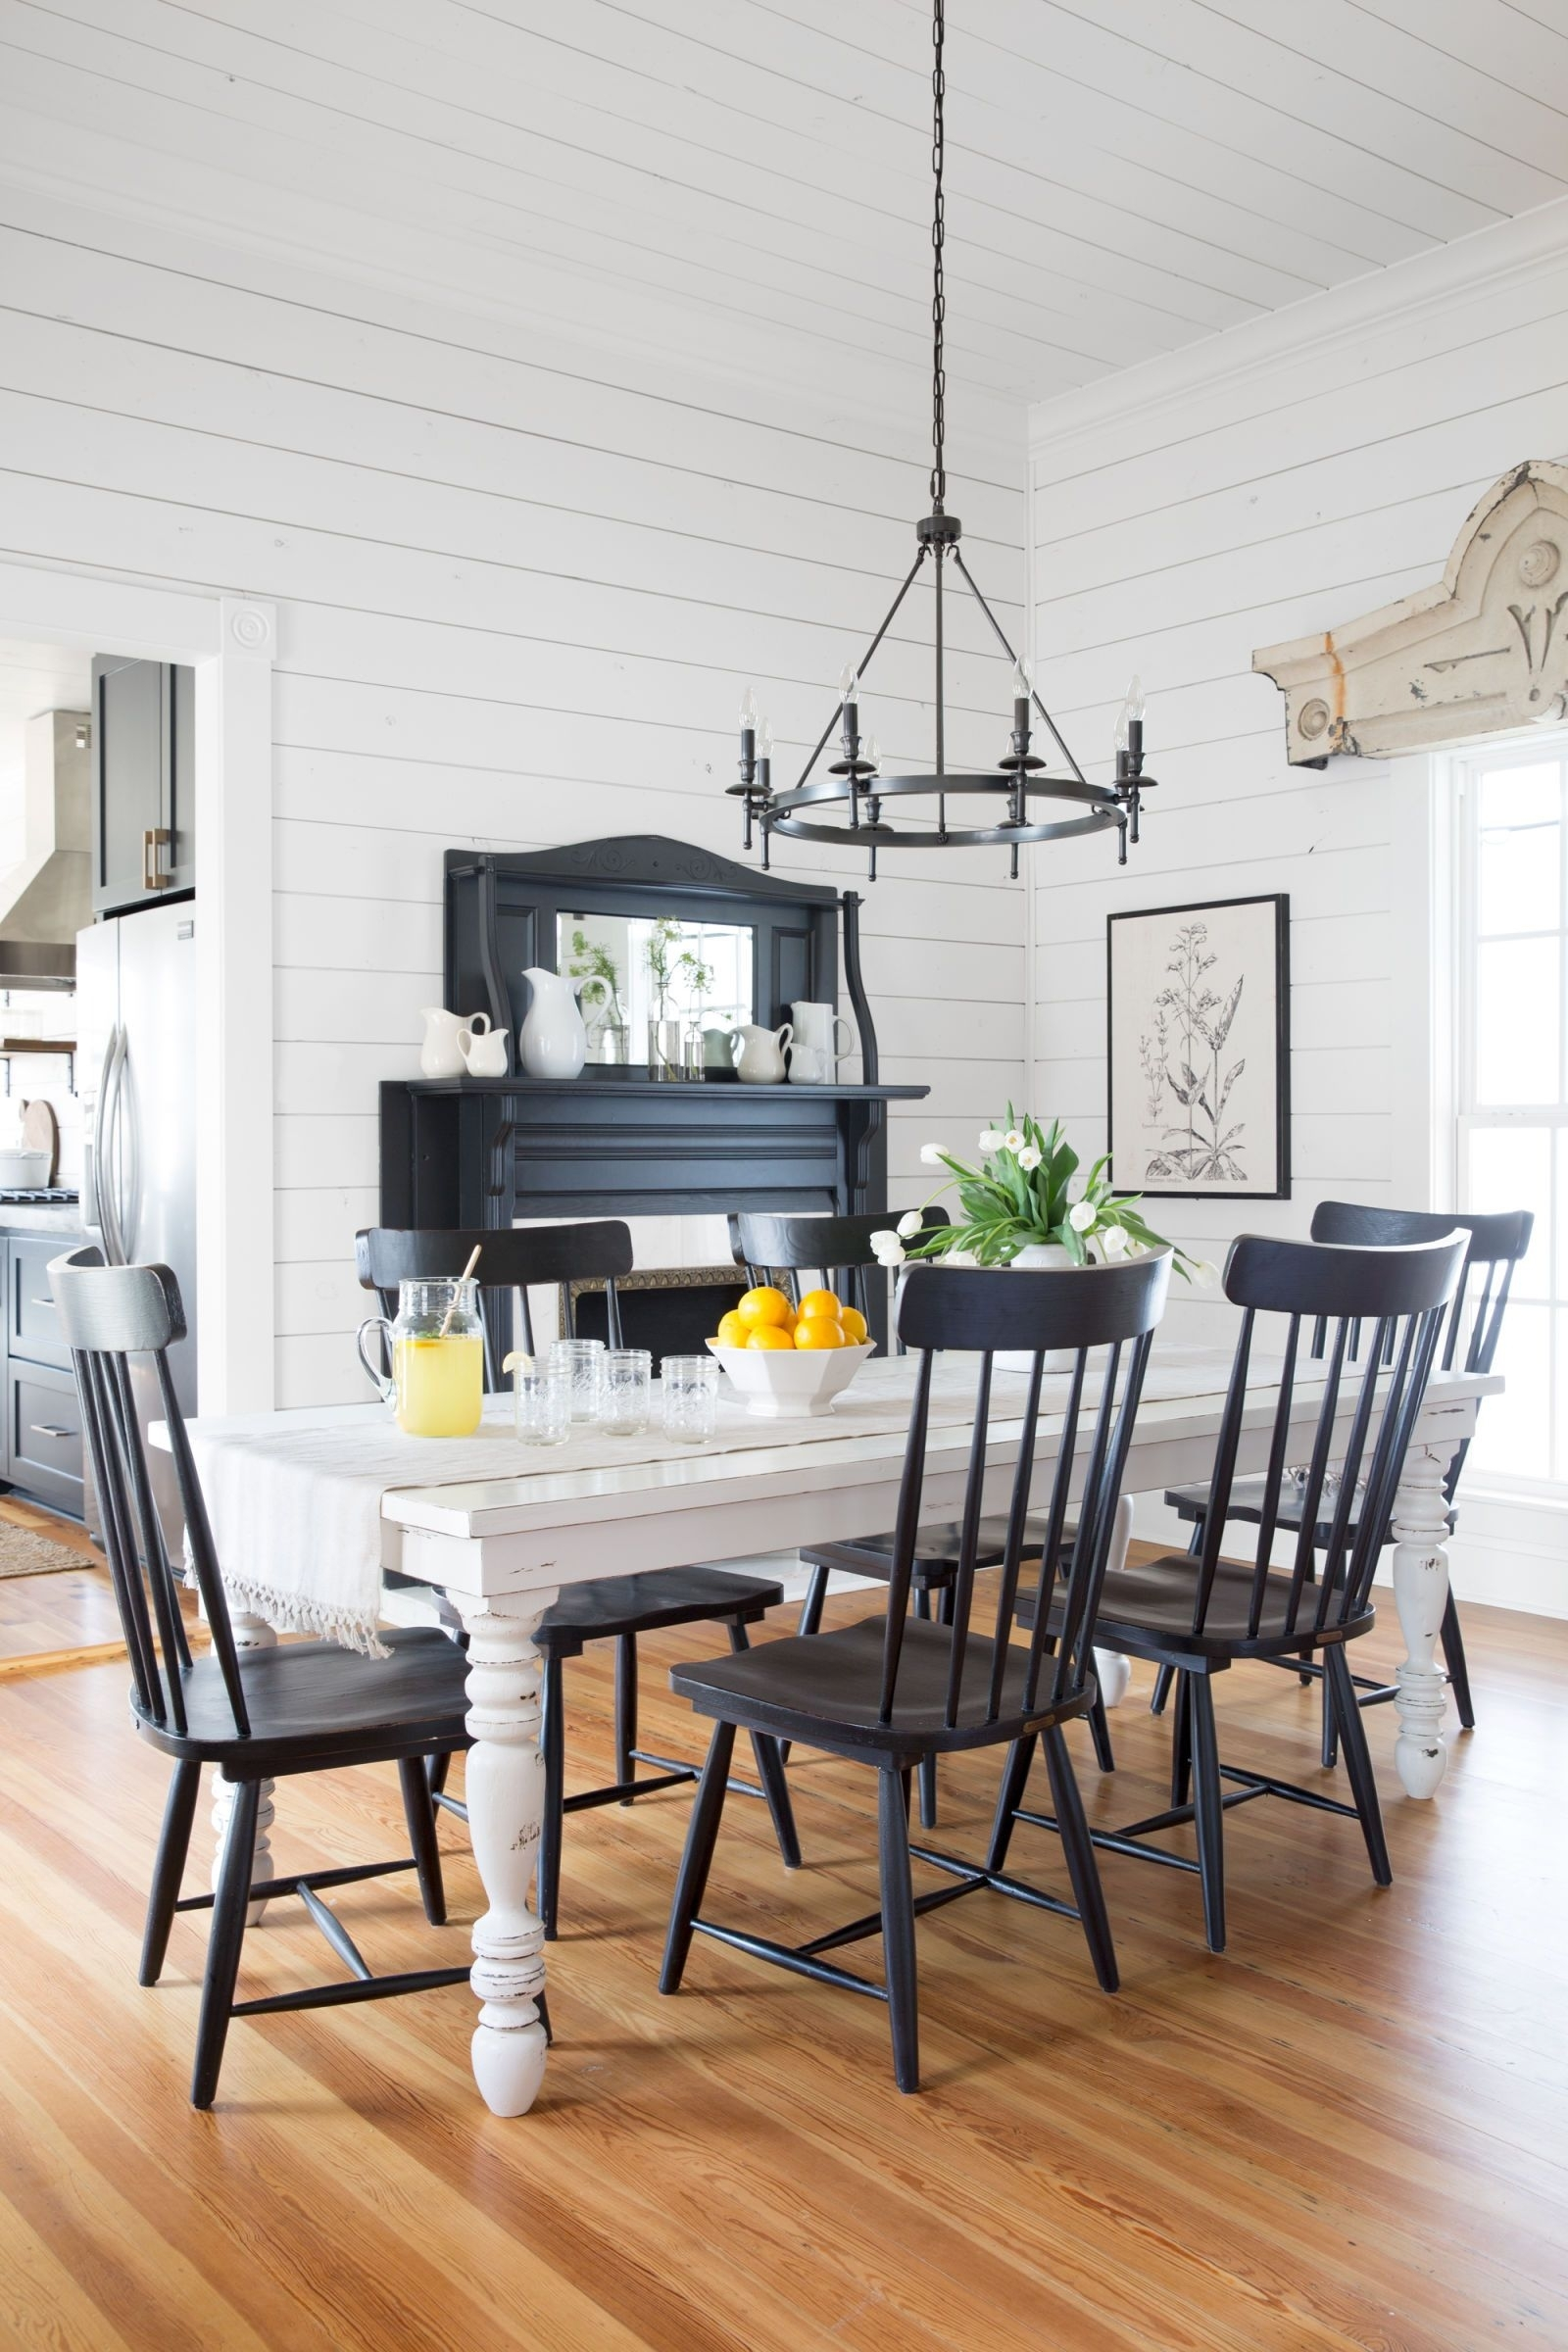 Take A Tour Of Chip And Joanna Gaines' Magnolia House B&b | Country Inside Most Popular Magnolia Home White Keeping 96 Inch Dining Tables (Image 19 of 20)